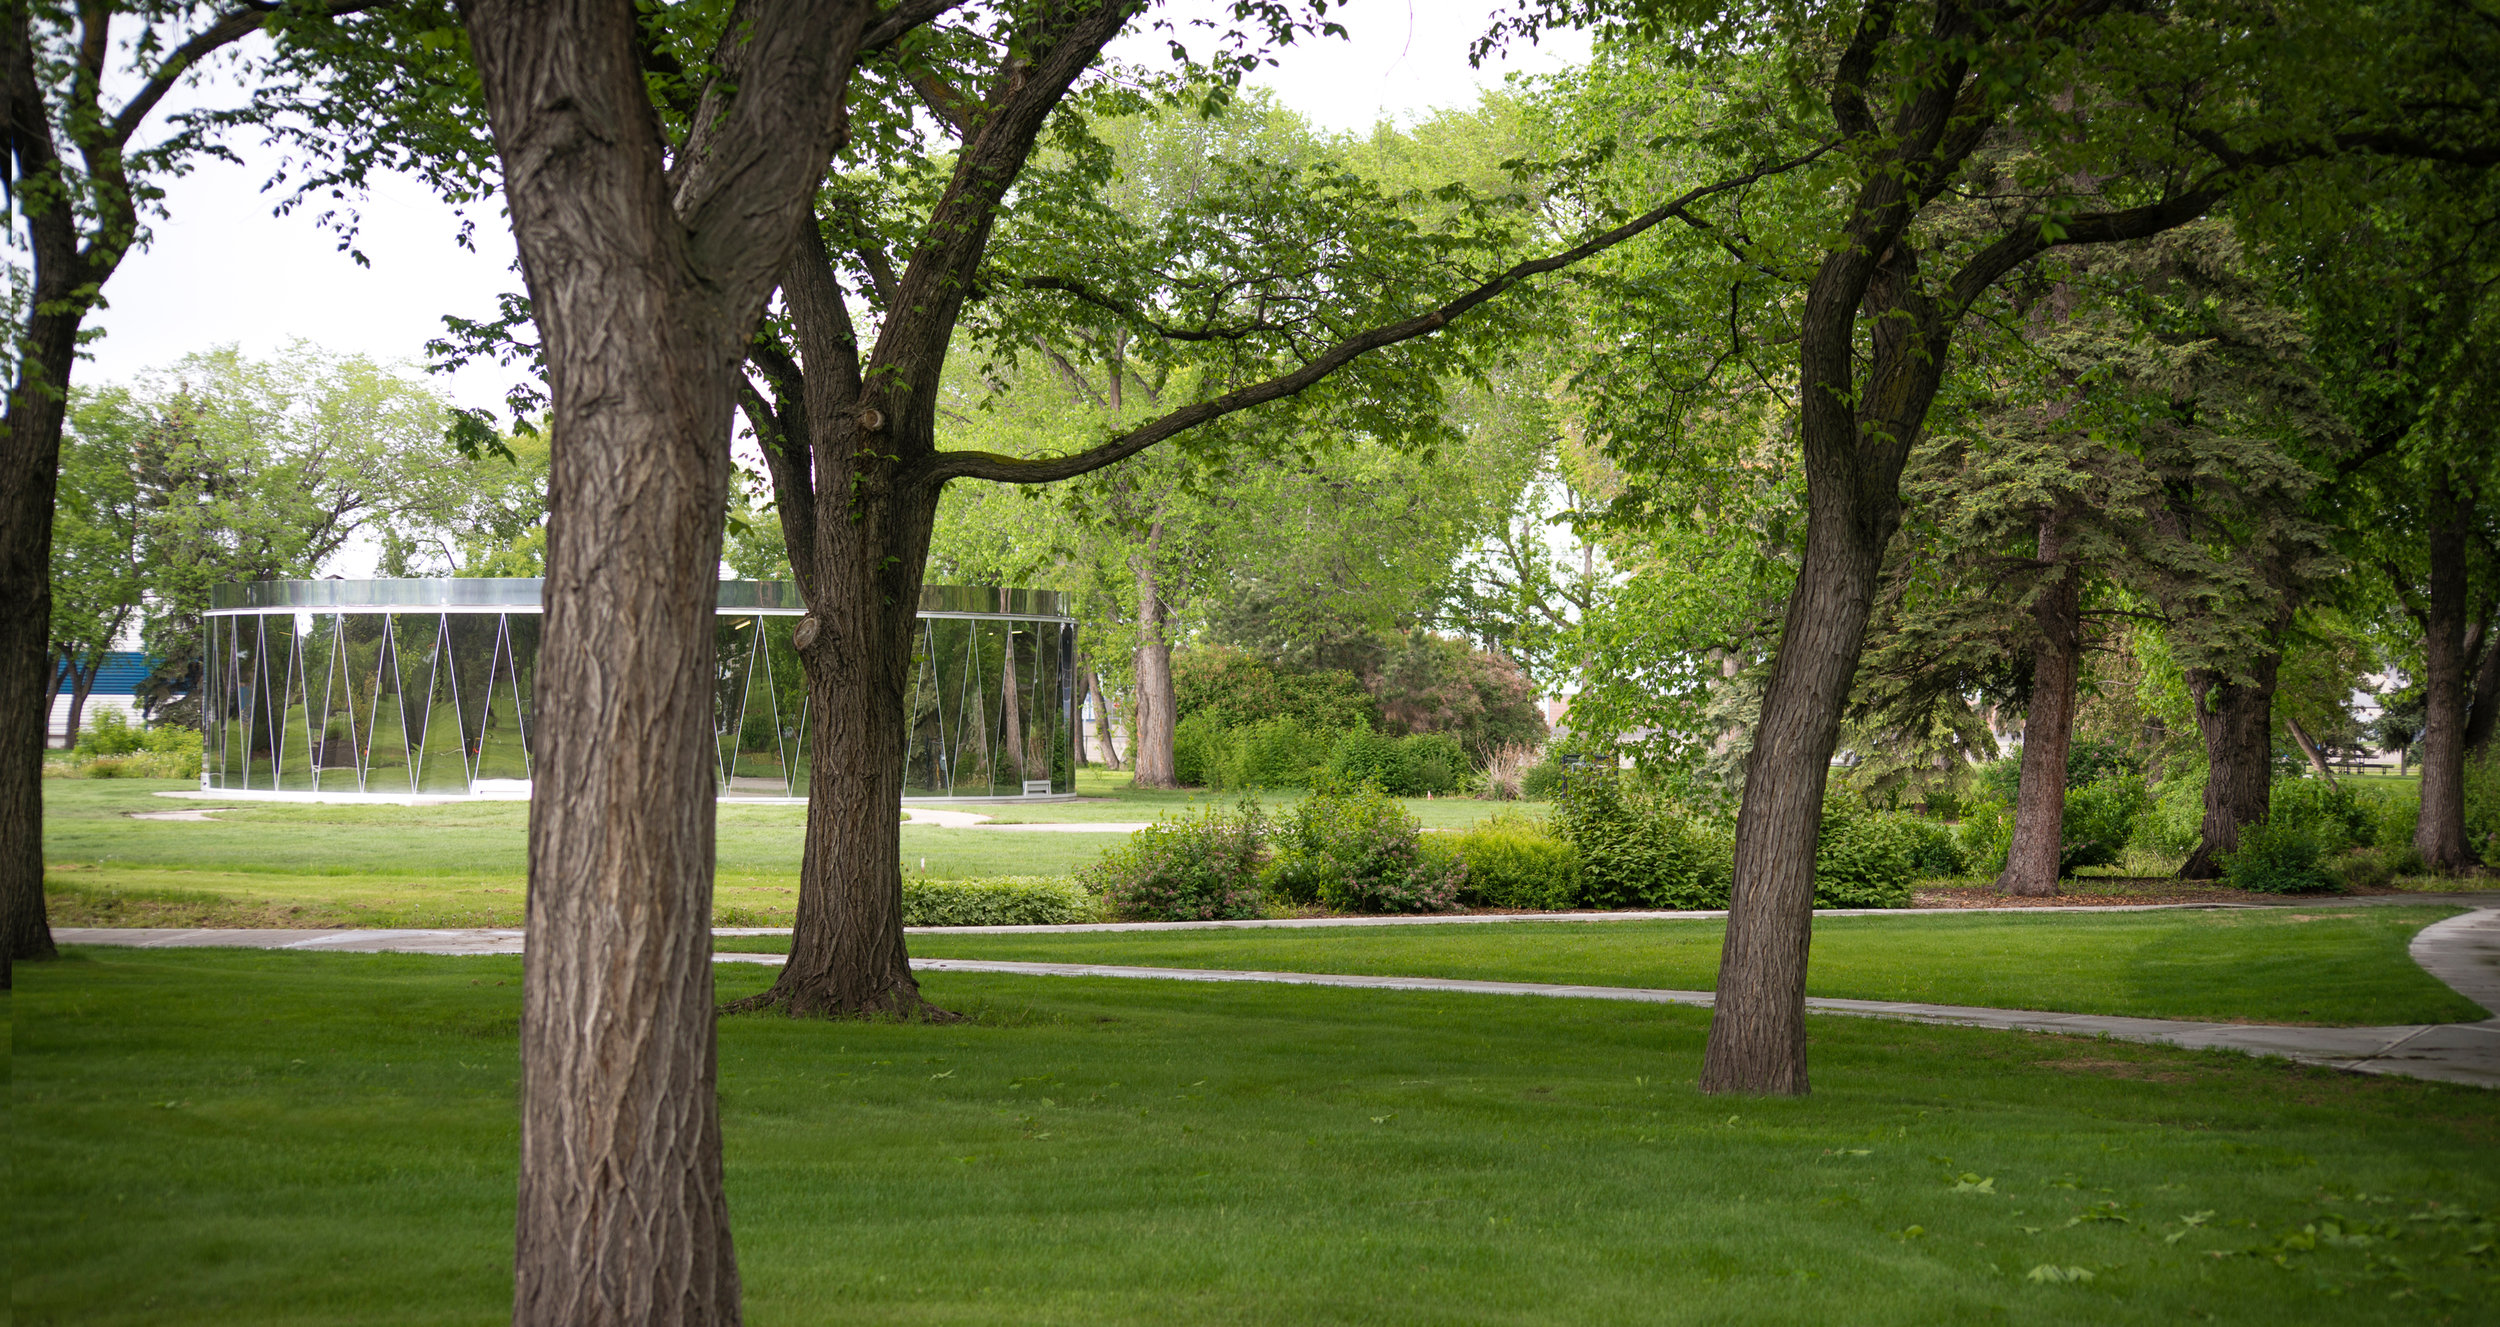 Borden Park - Exterior View with trees